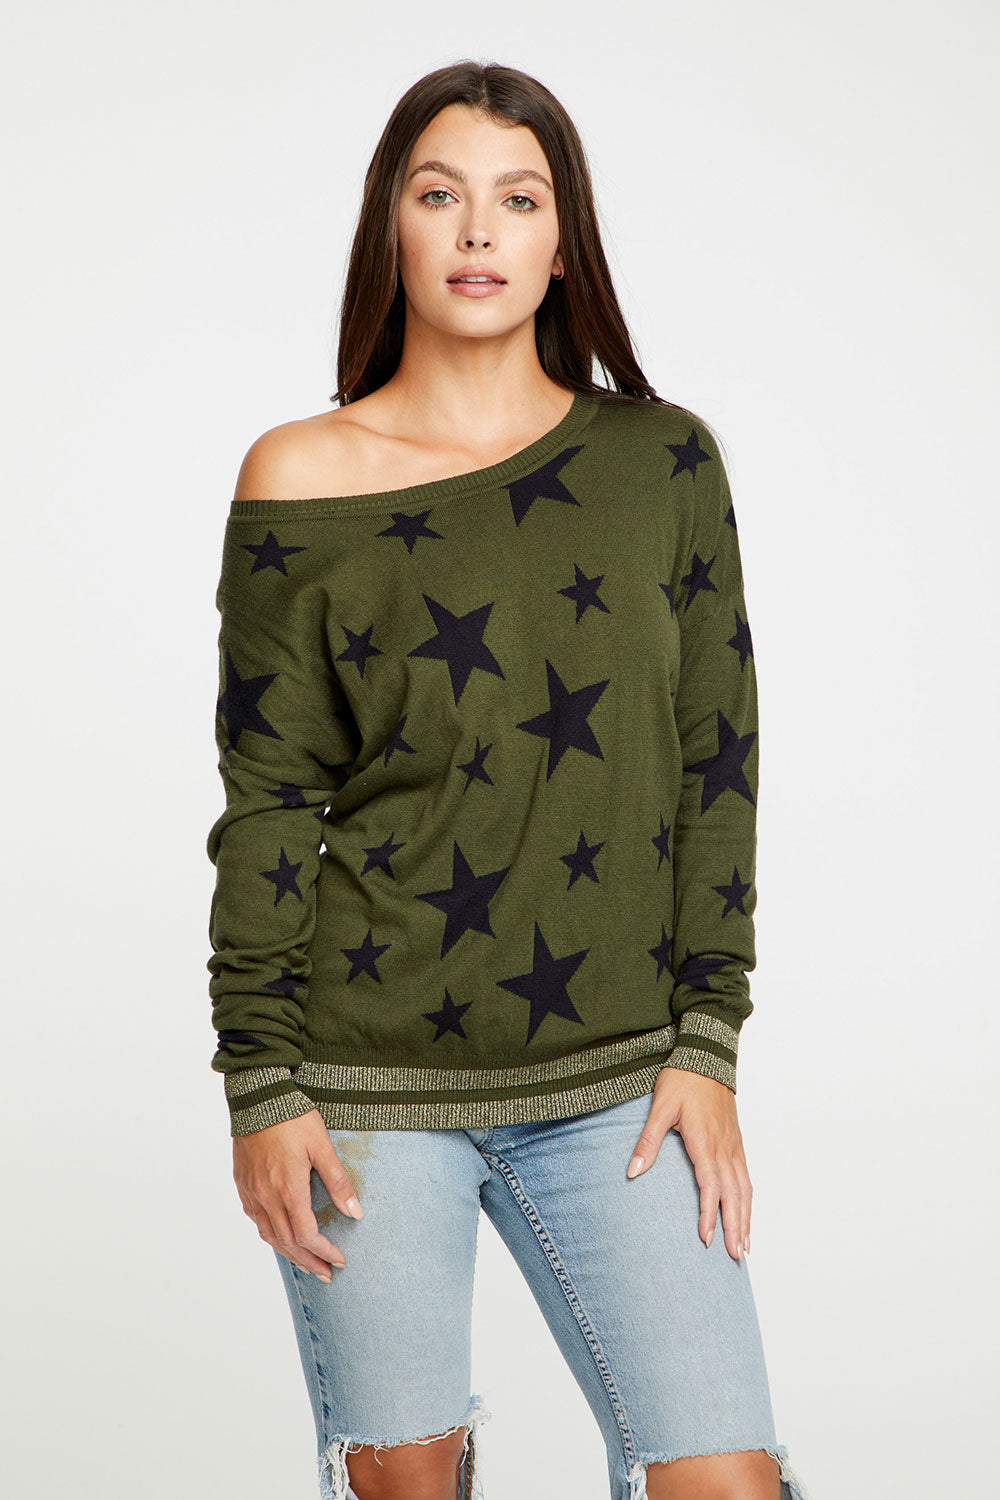 Black Star Cotton Cashmere Wide Neck Dolman Pullover WOMENS chaserbrand4.myshopify.com